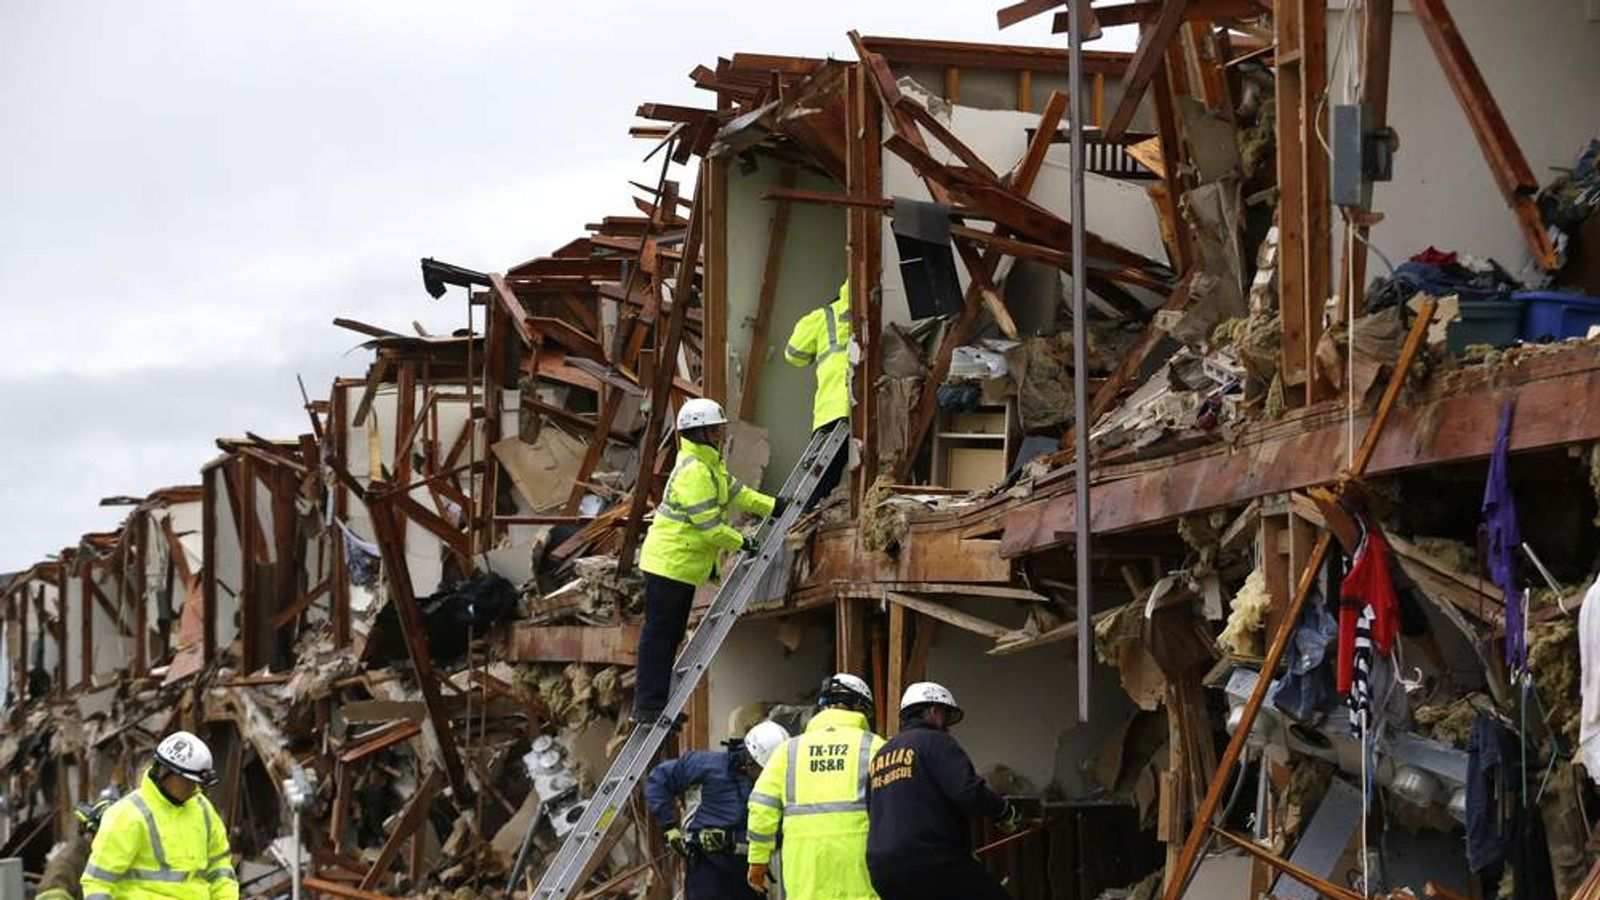 Search for survivors at apartment after Texas fertiliser plant explosion